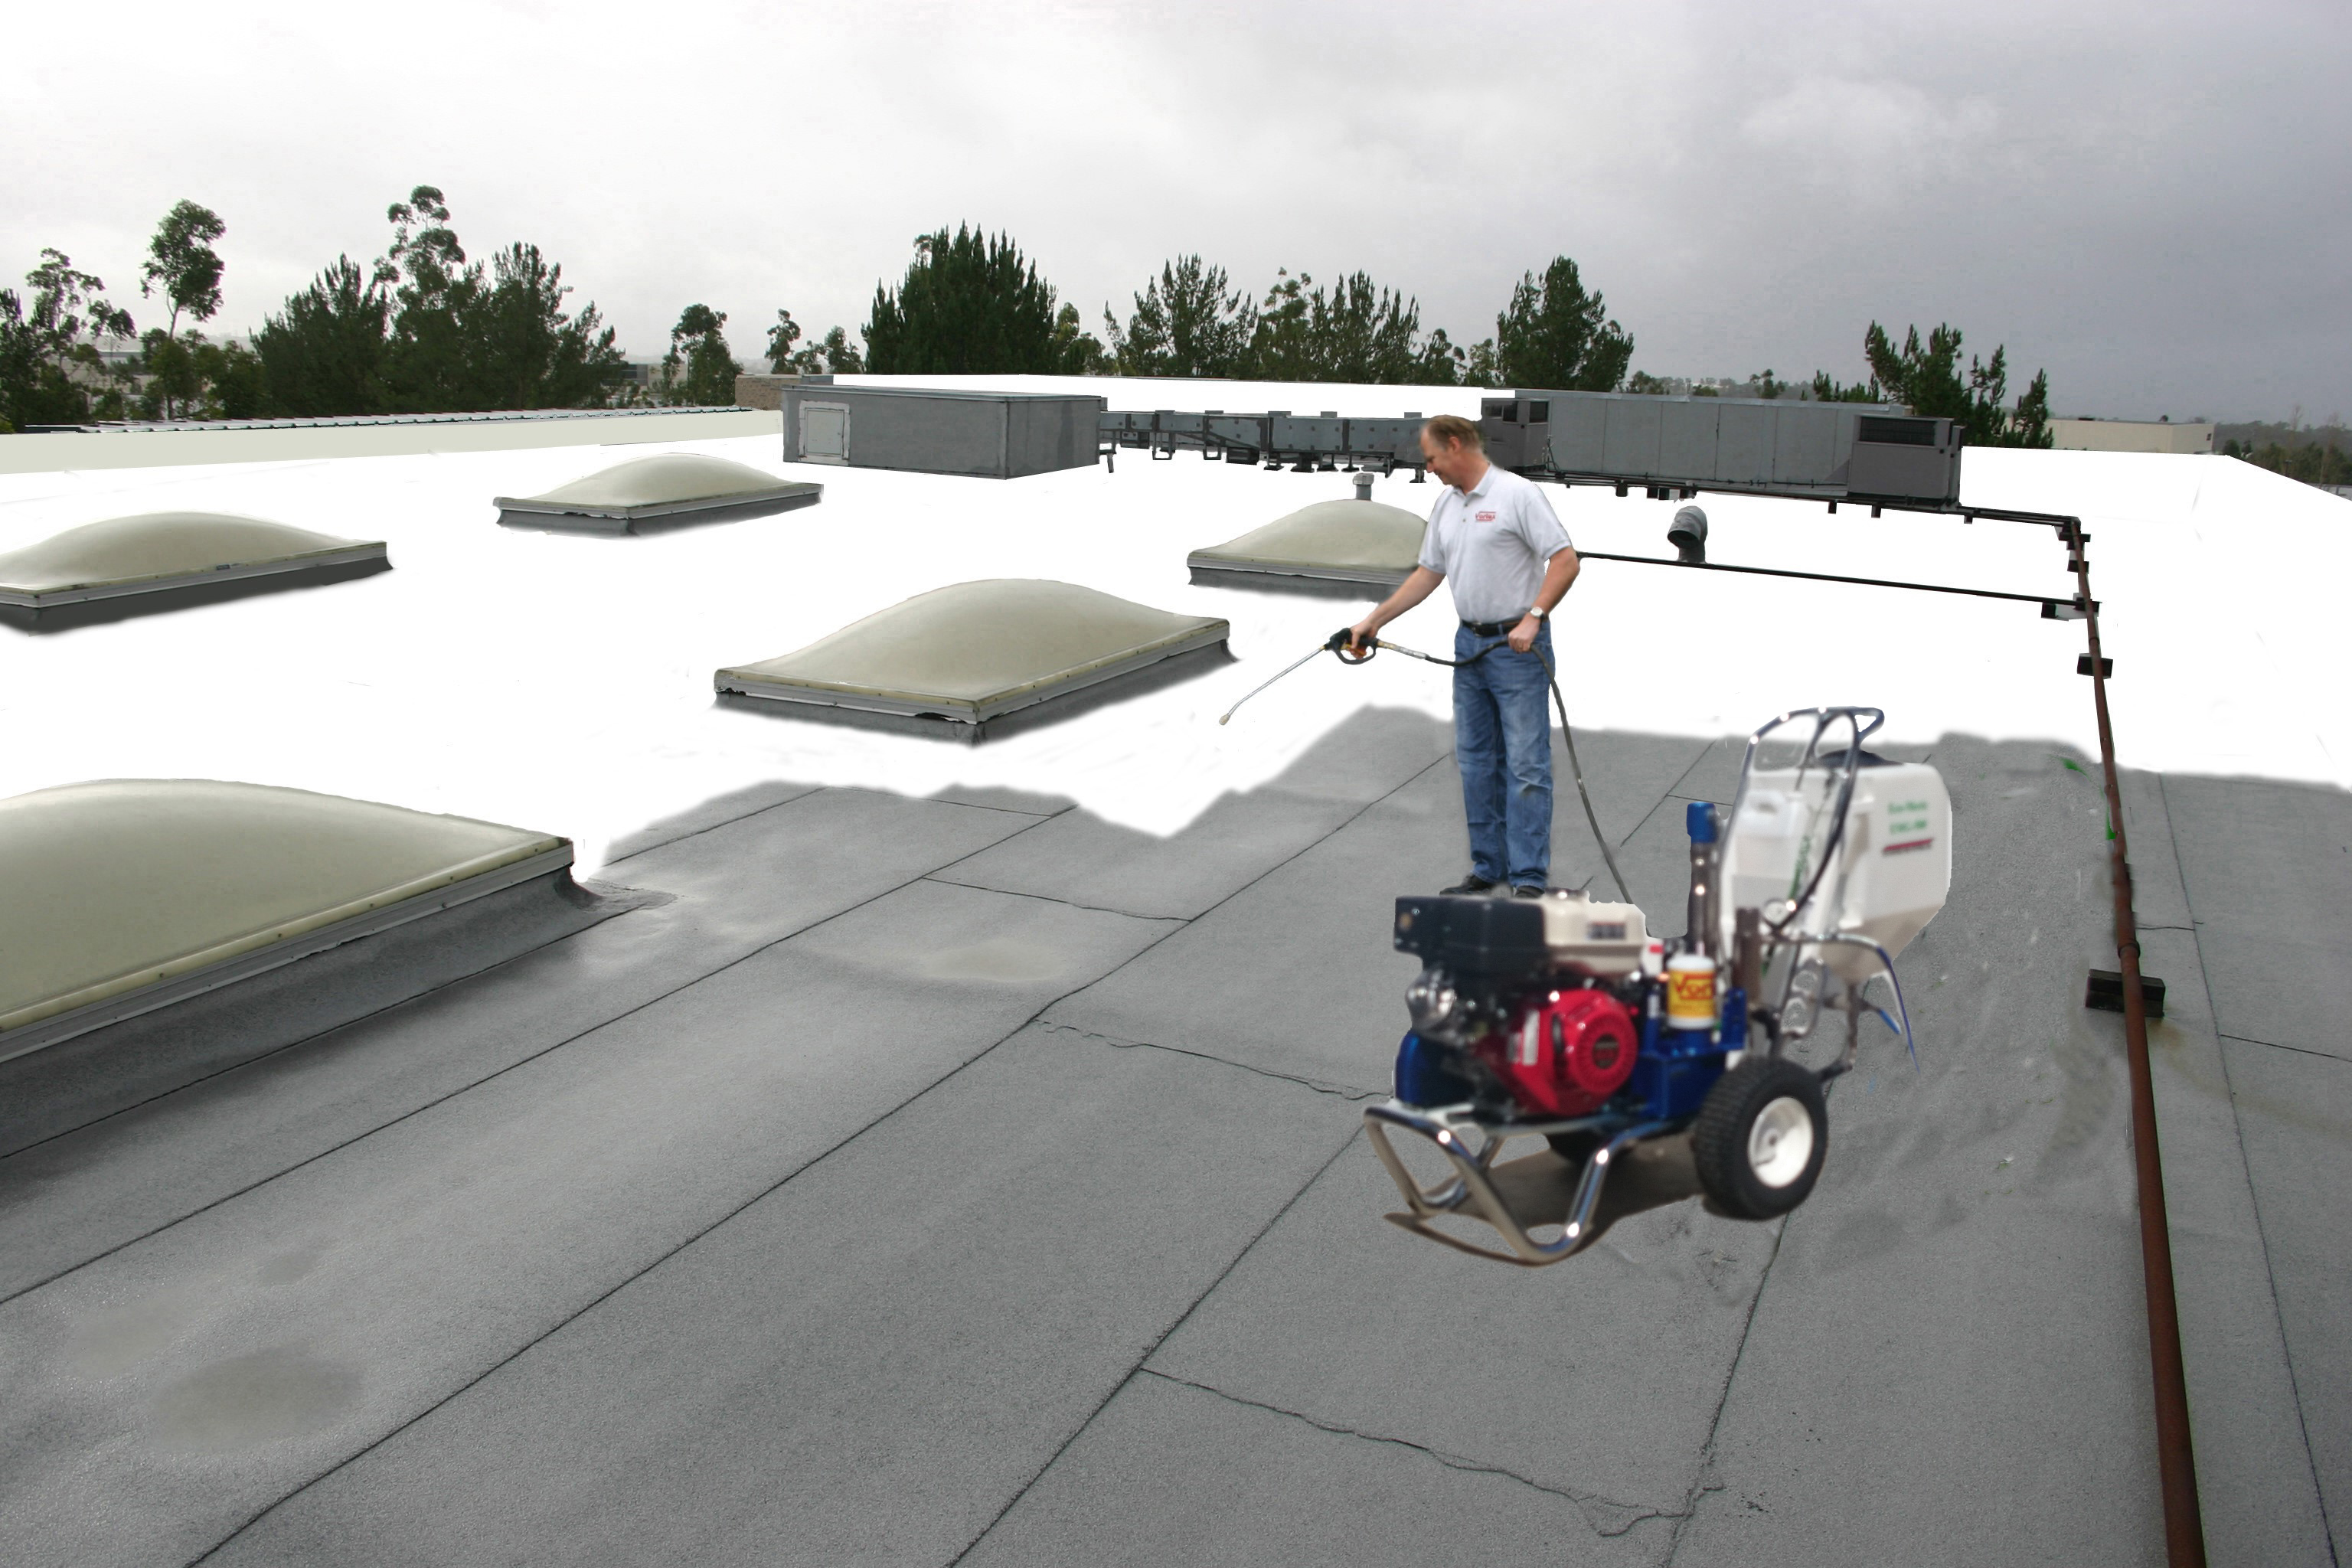 ... 09.10.15_Expand-Into-Roofing-Solutions-With-Vortex-Eco-Meric-Roofing -Systems_New-Eco-on-Burbank-Roof-2.jpg ... & Index of /wp-content/uploads/2015/09 memphite.com